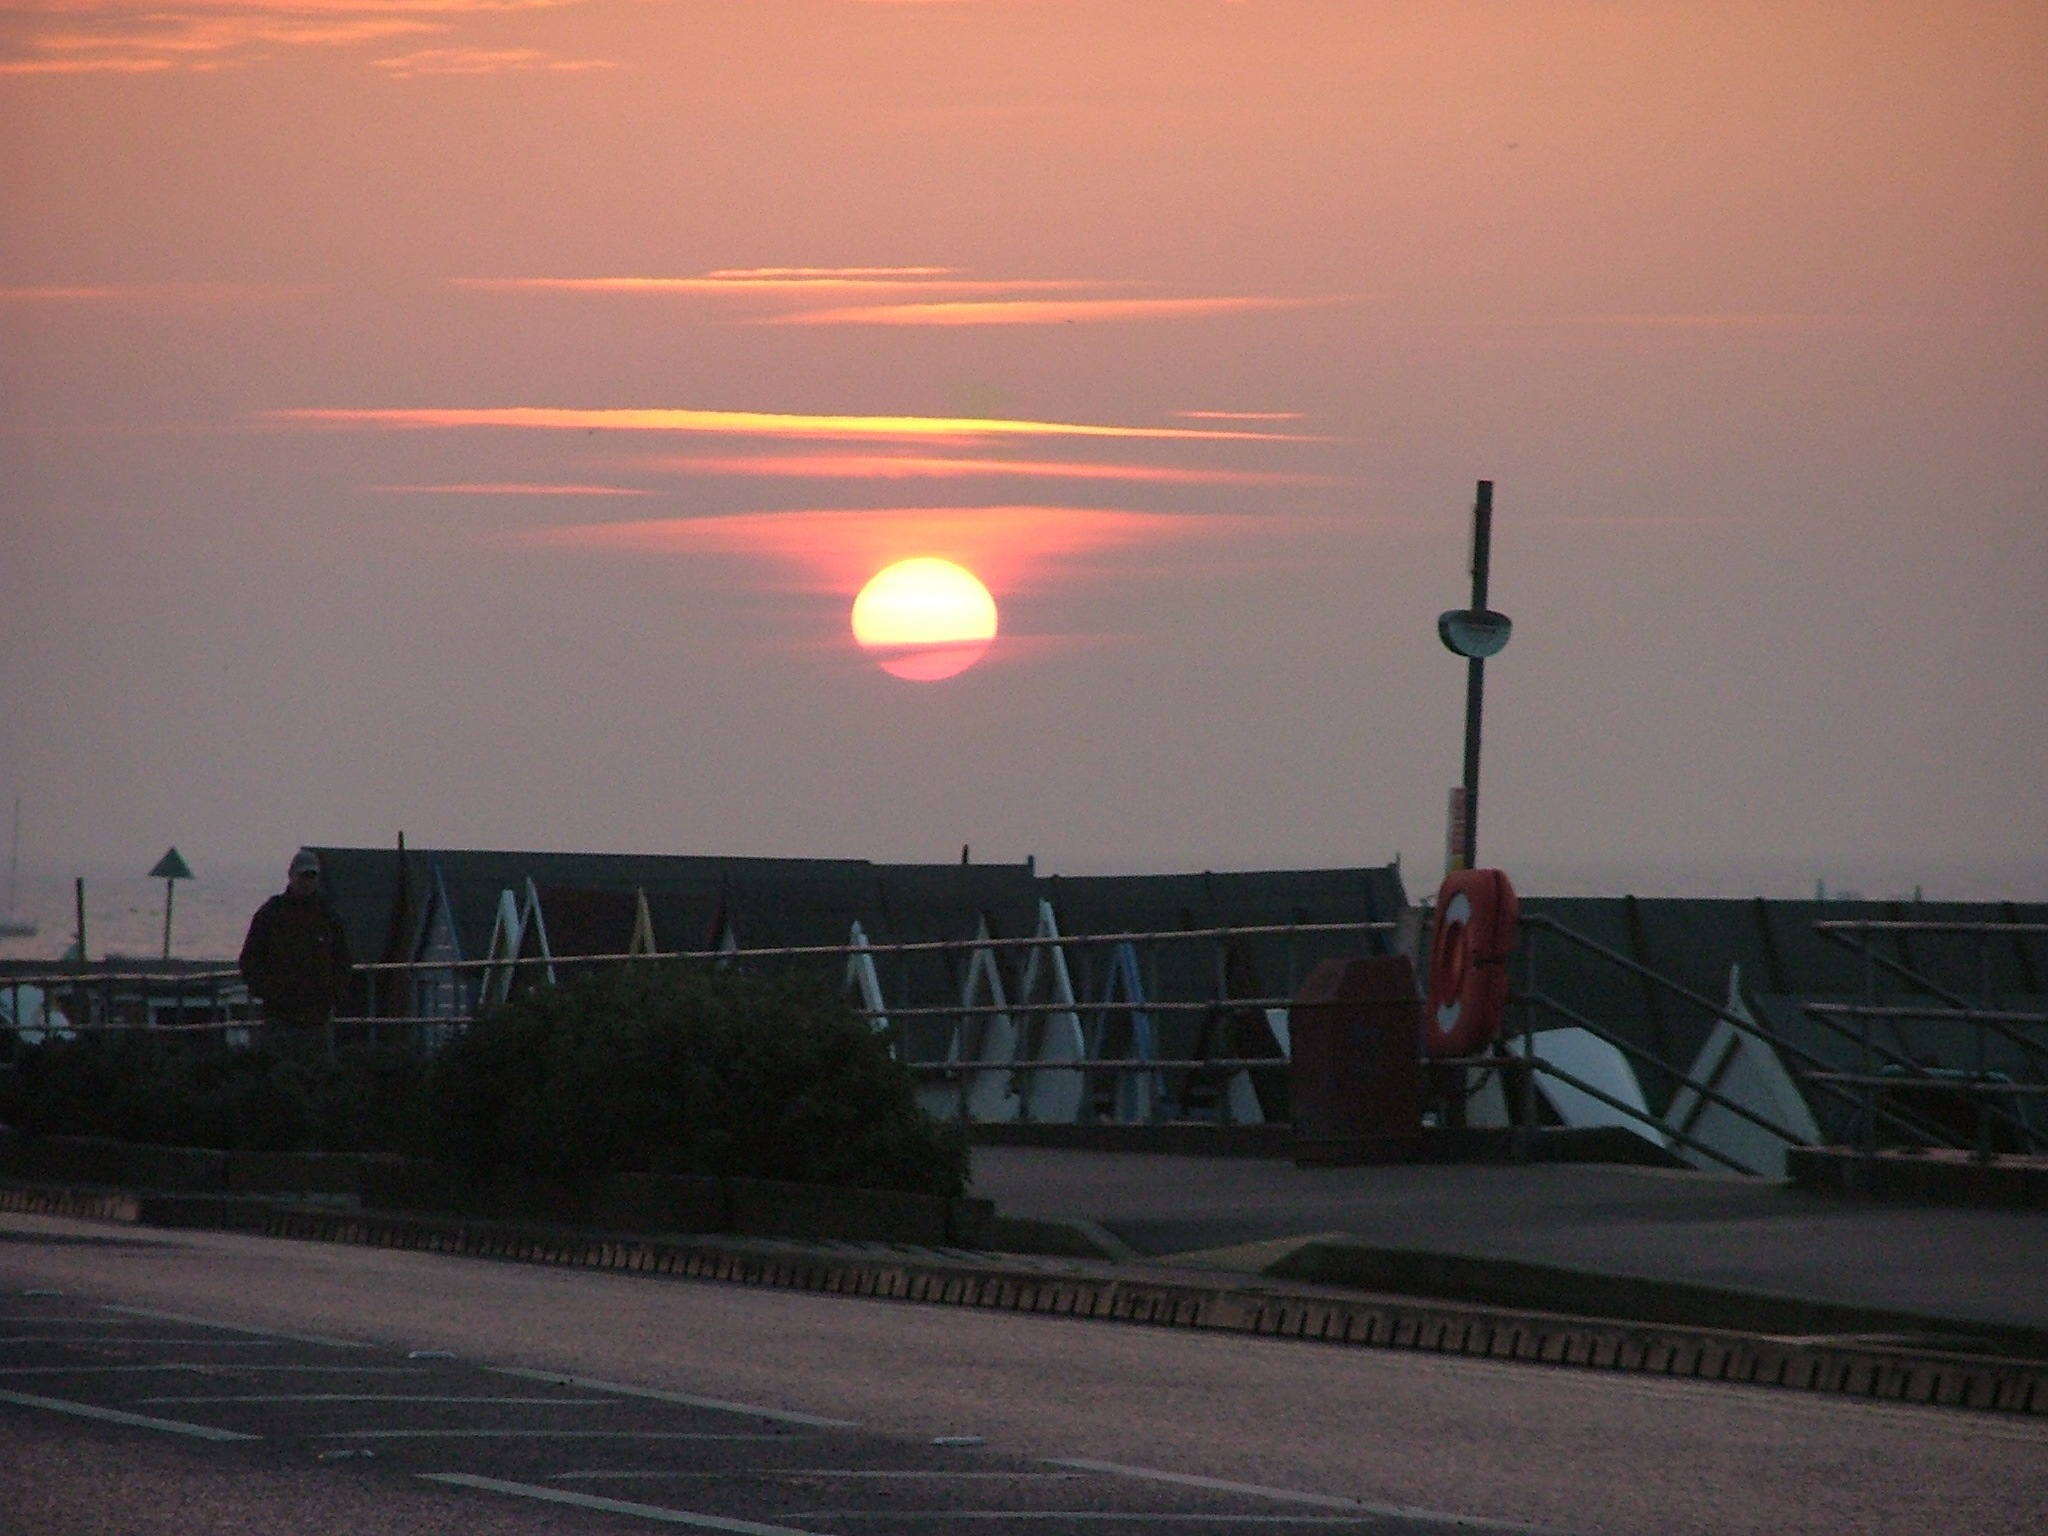 Sun up by Kirston Tozer